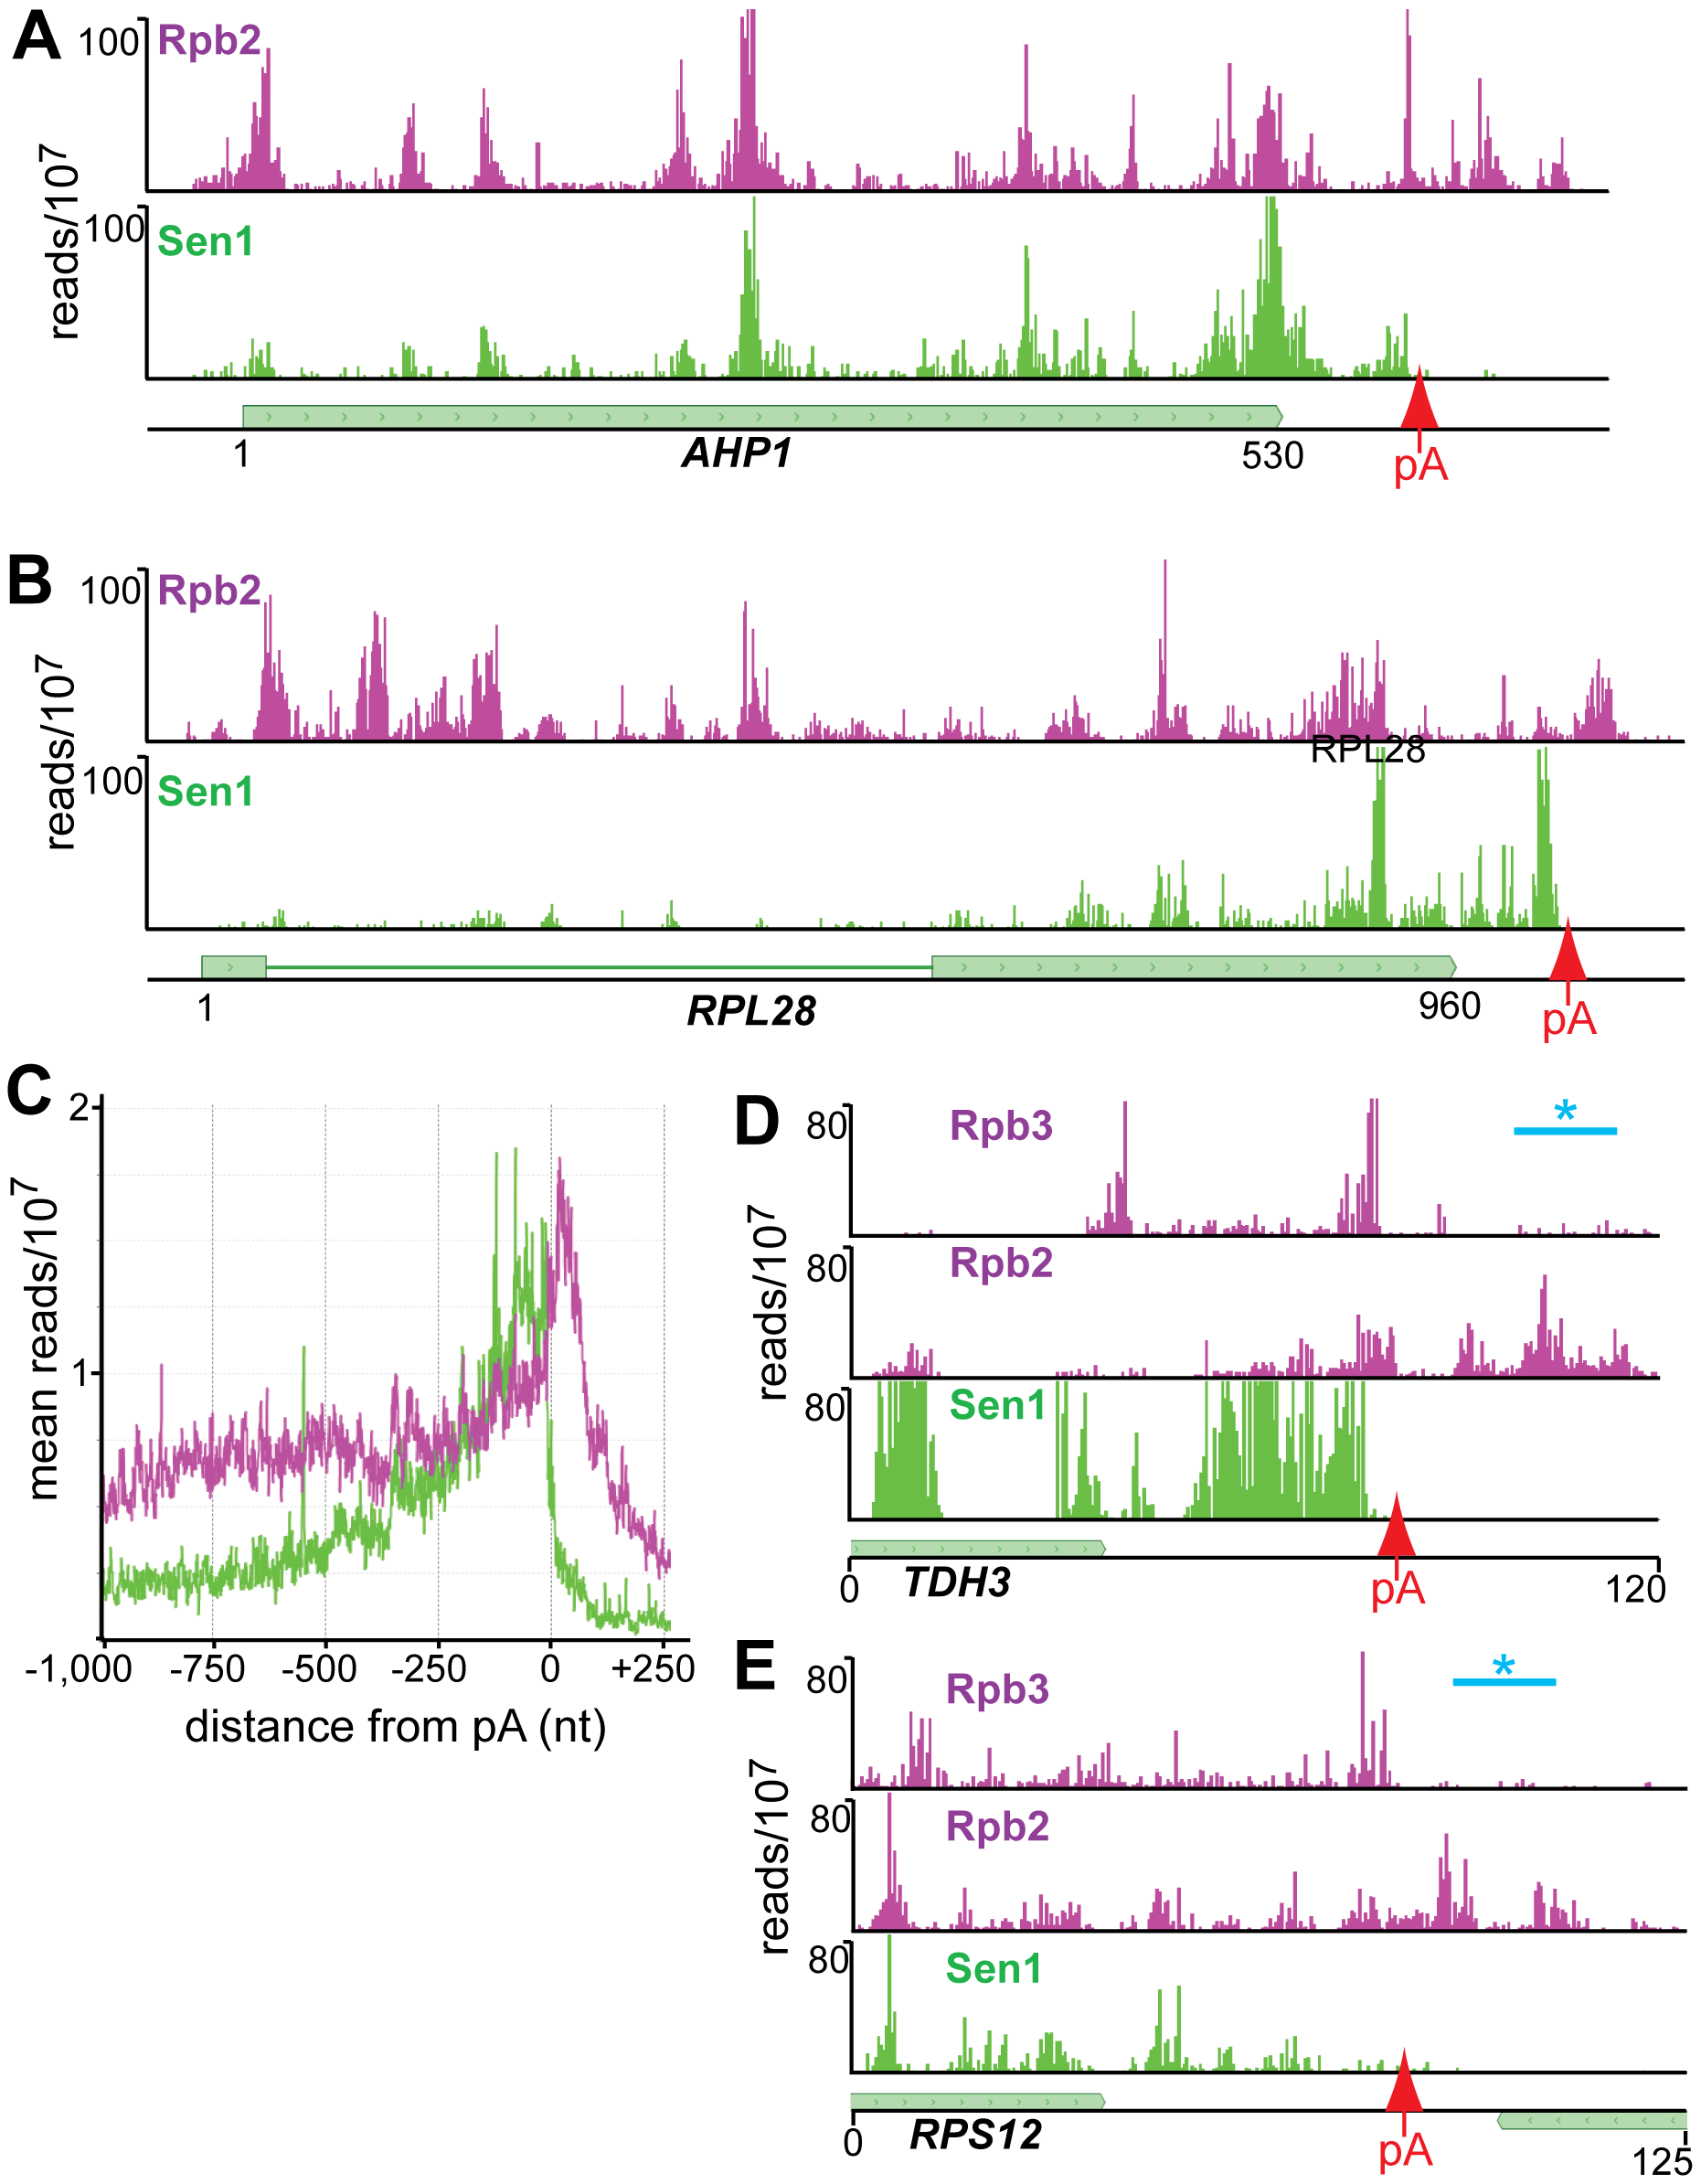 Distribution of Rpb2 and Sen1 on highly expressed genes.